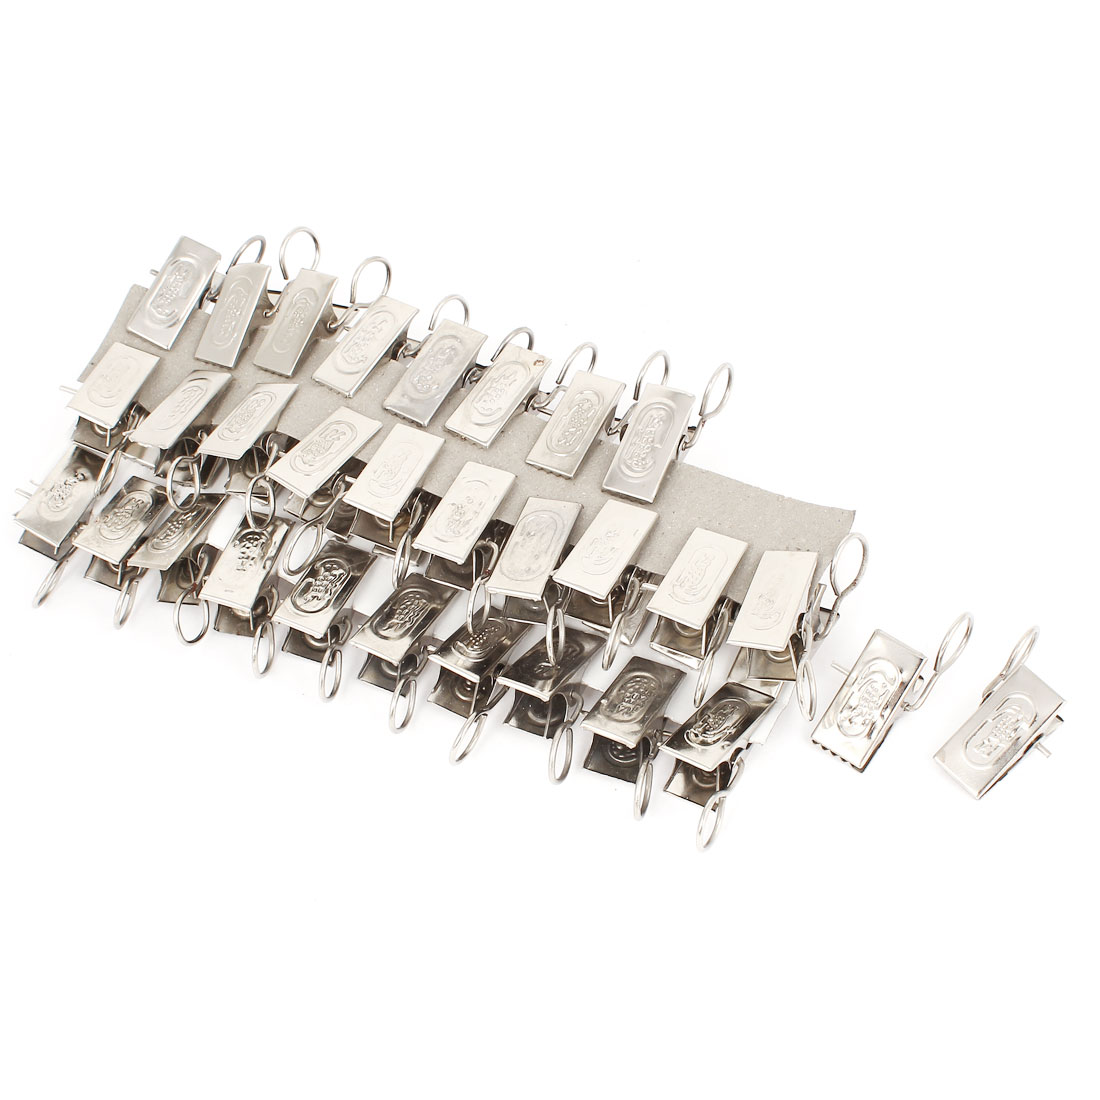 40 Pcs Silver Tone Metallic Spring Loaded Curtain Drapery Alligator Clips Hooks